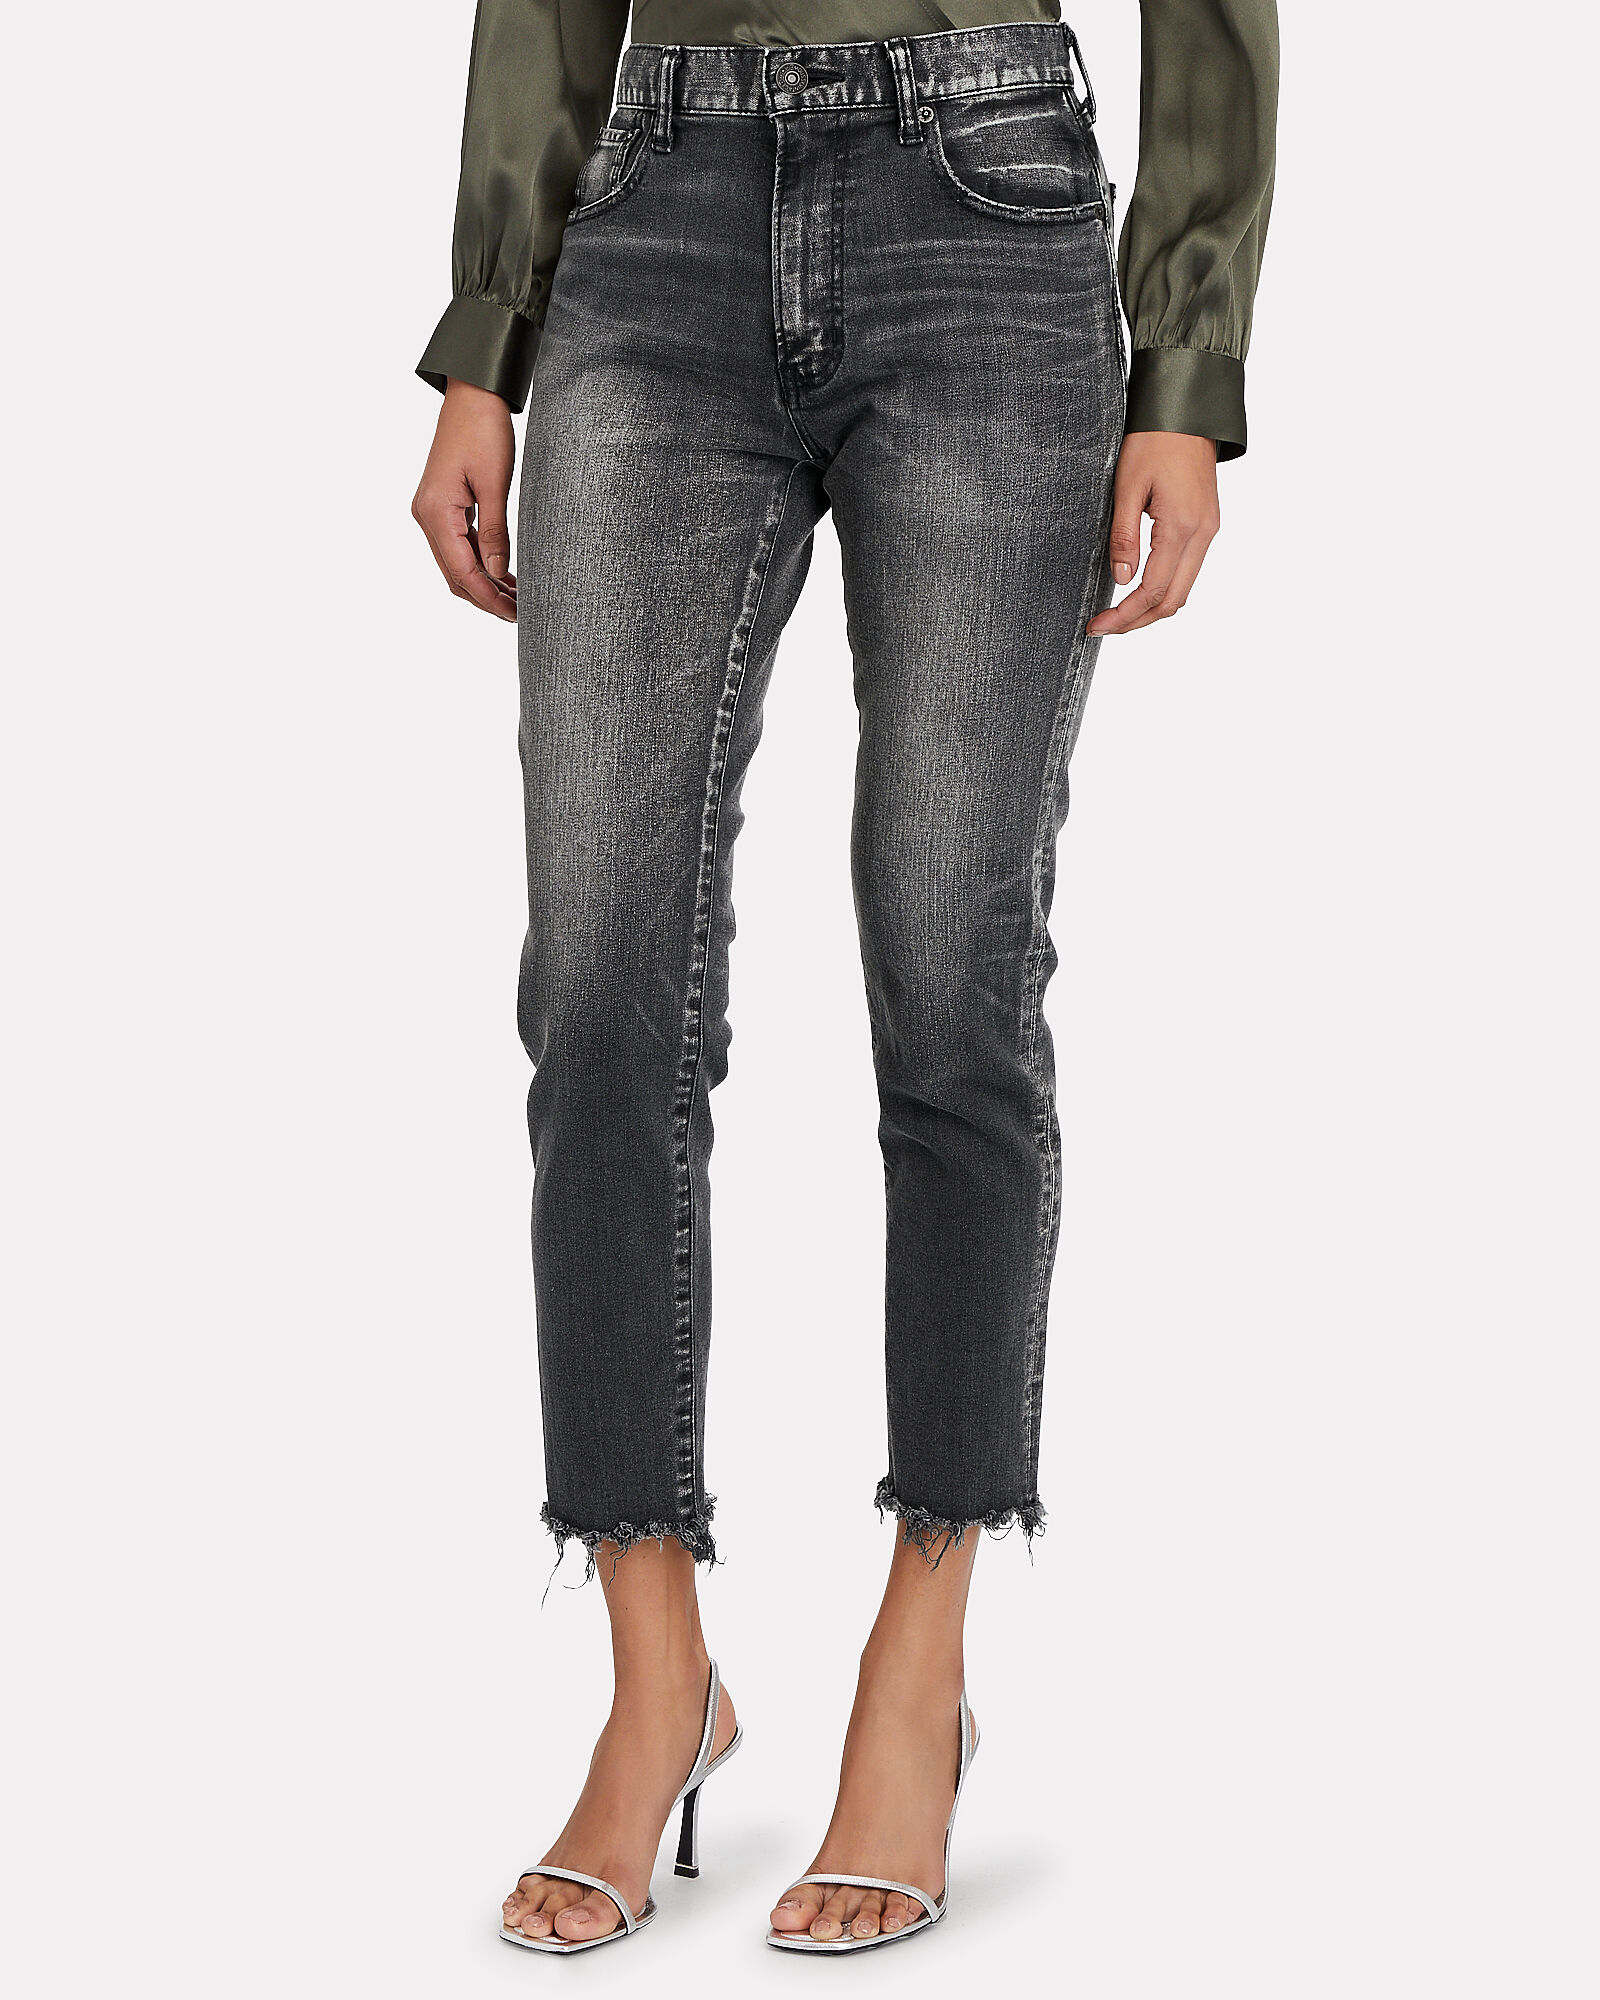 Westcliffe High-Rise Skinny Jeans, FADED BLACK, hi-res